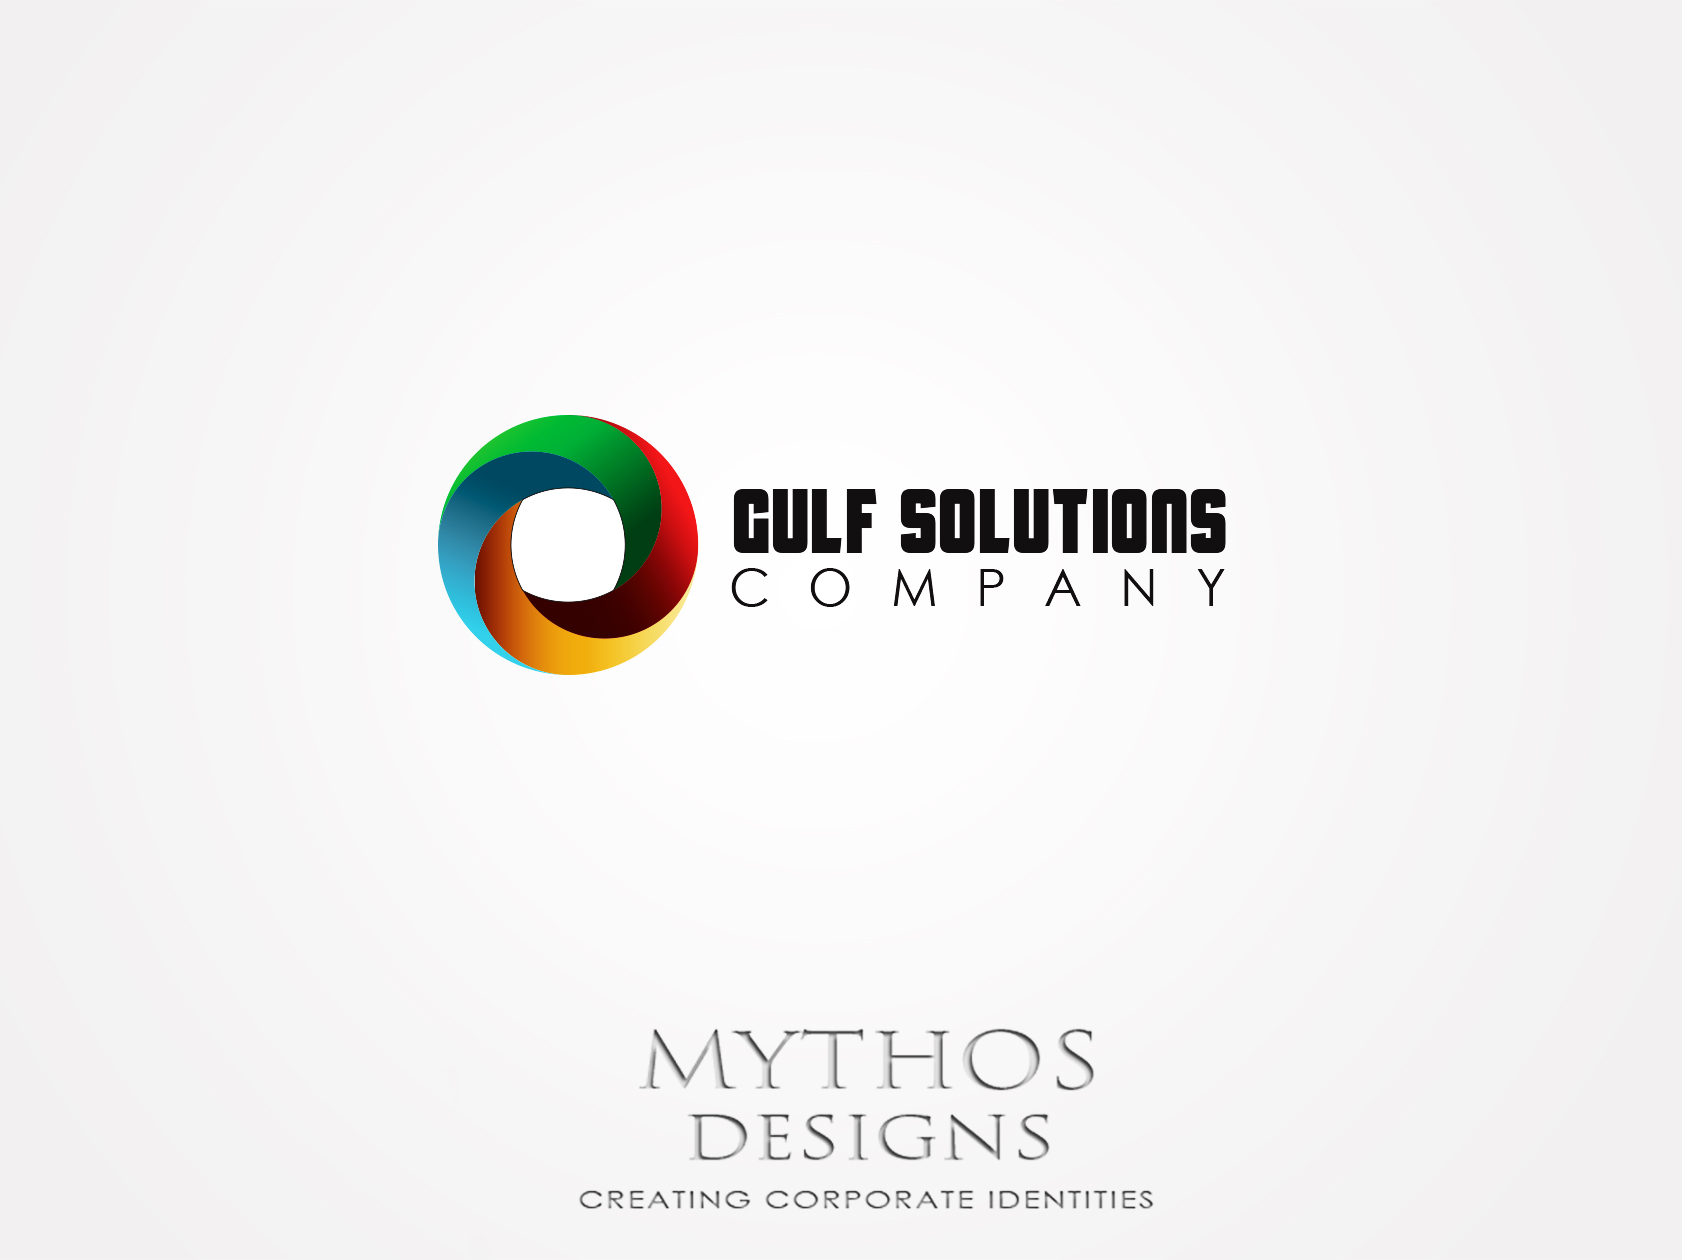 Logo Design by Mythos Designs - Entry No. 23 in the Logo Design Contest New Logo Design for Gulf solutions company.